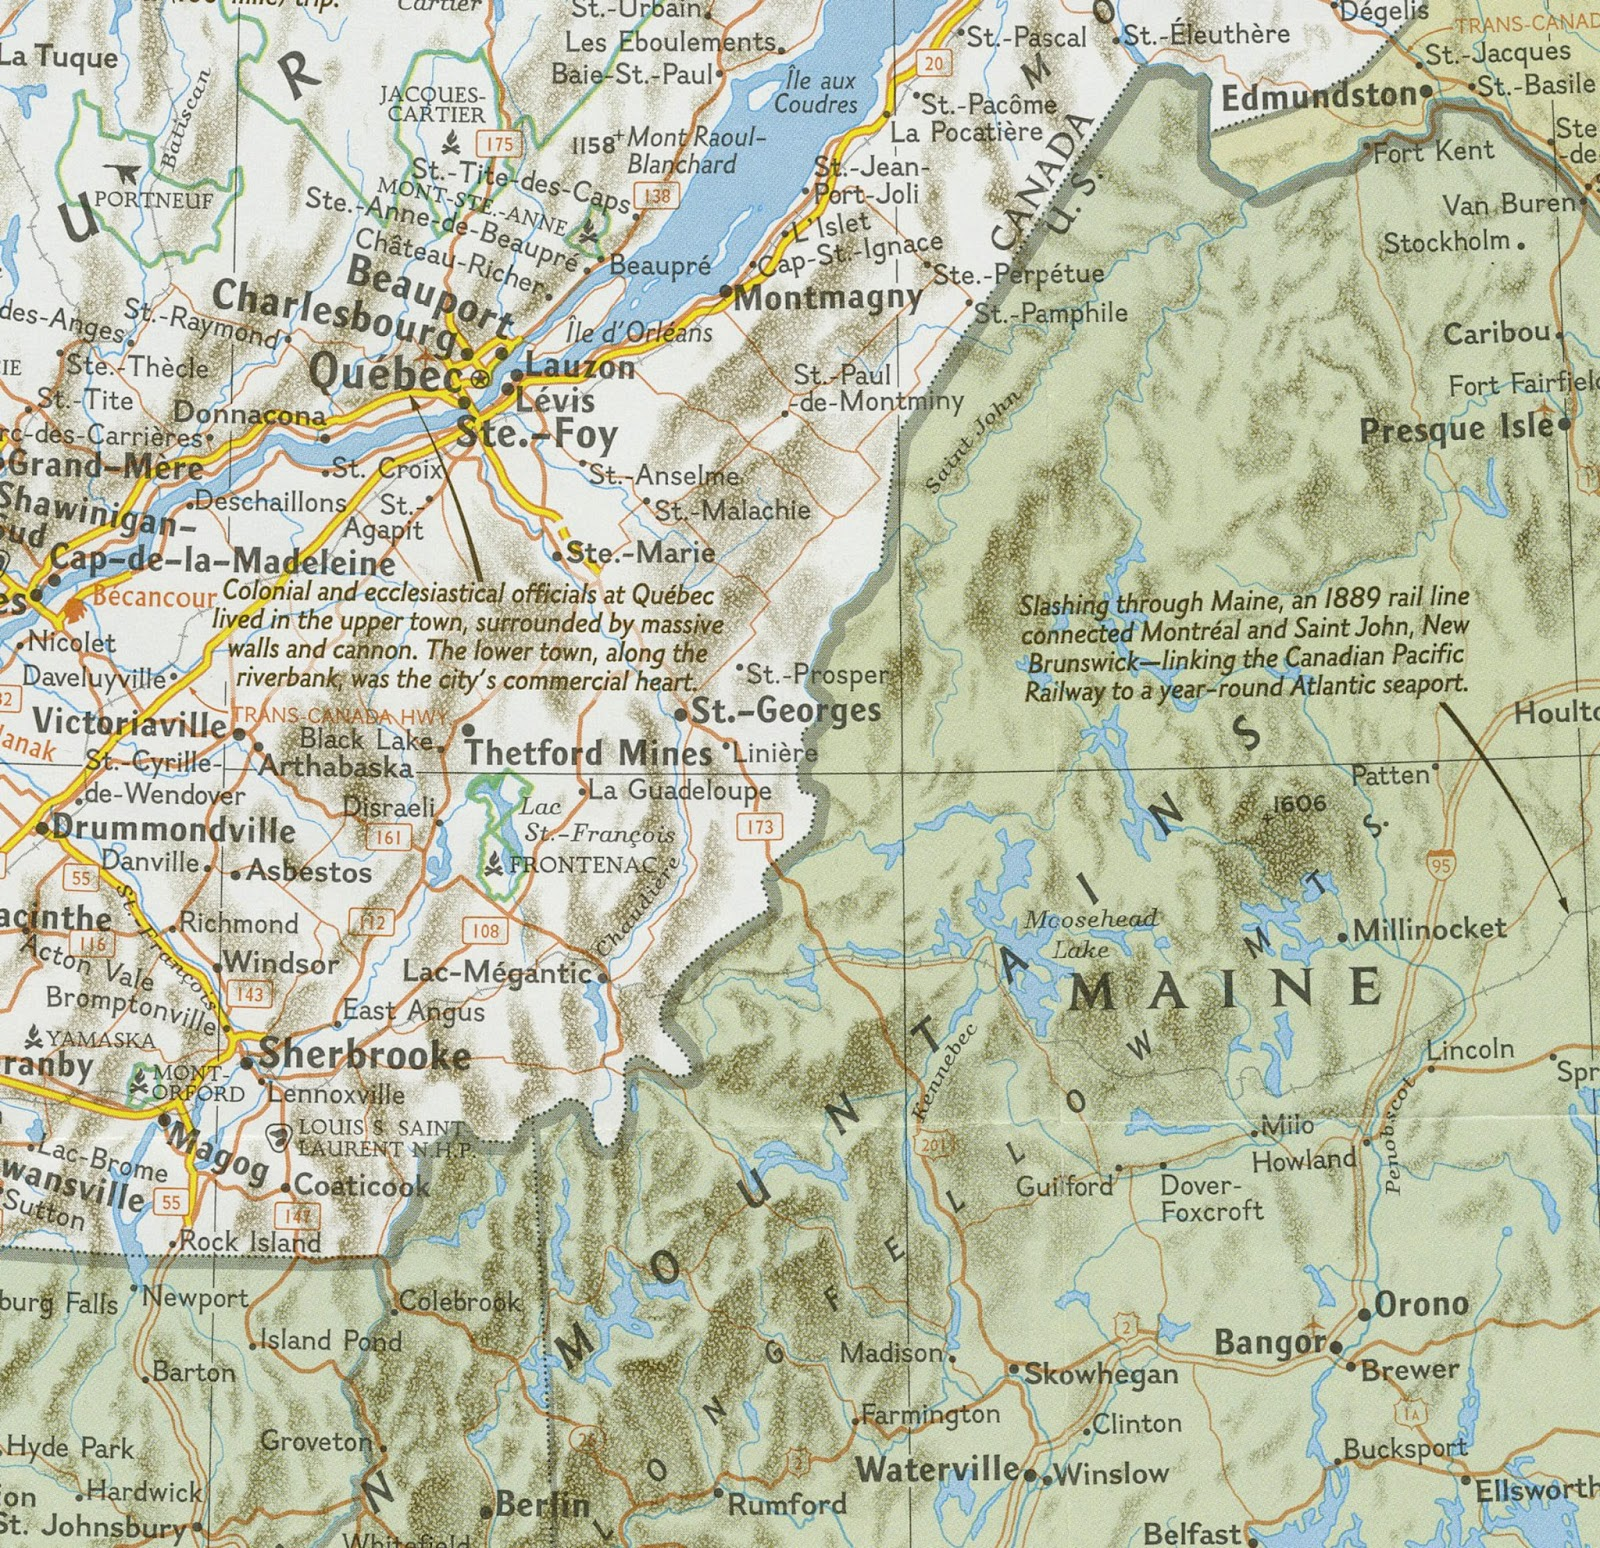 rail lines intersect at lac magantic at the bottom of the map